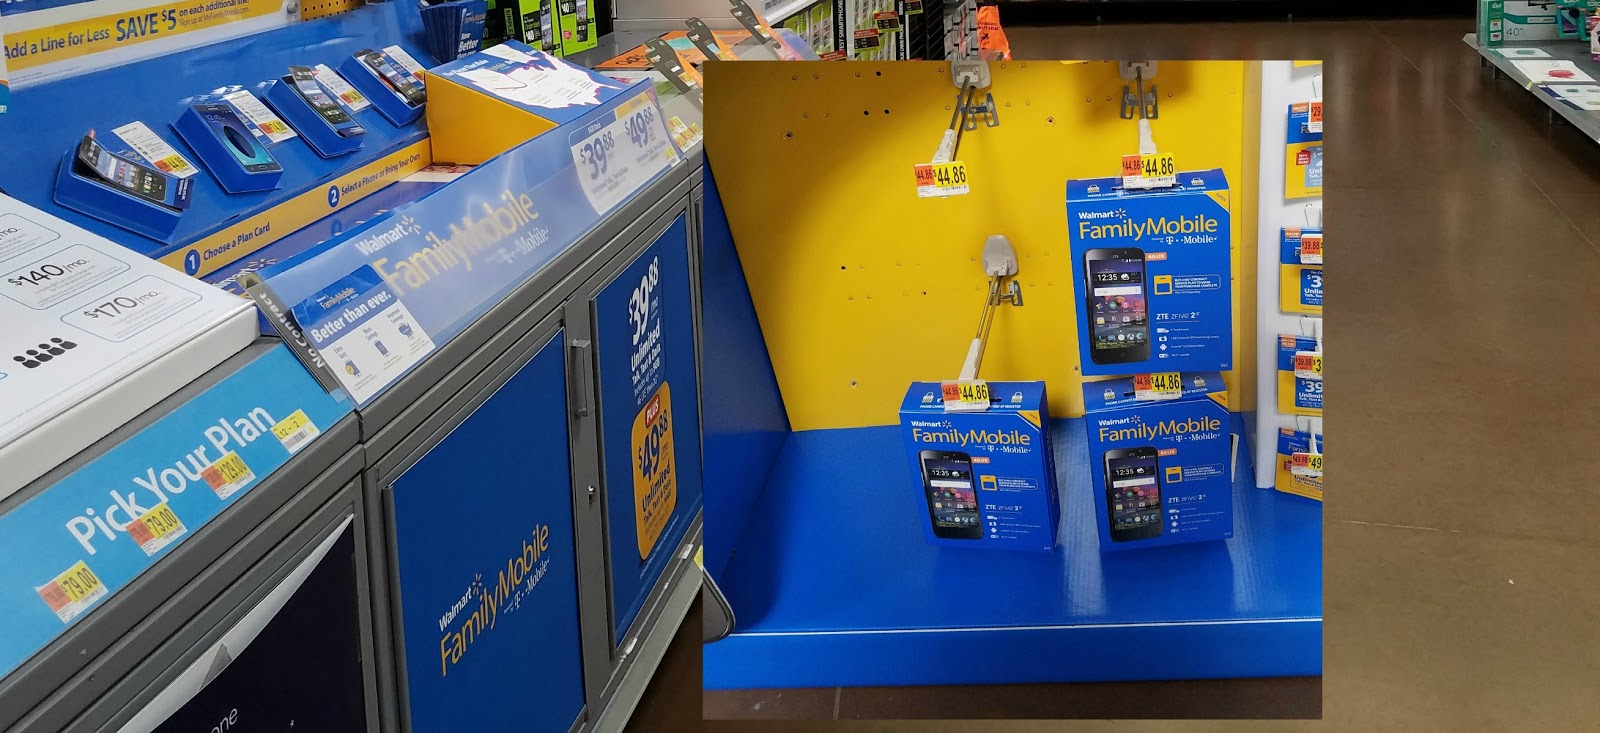 walmart family mobile unlimited talk text data